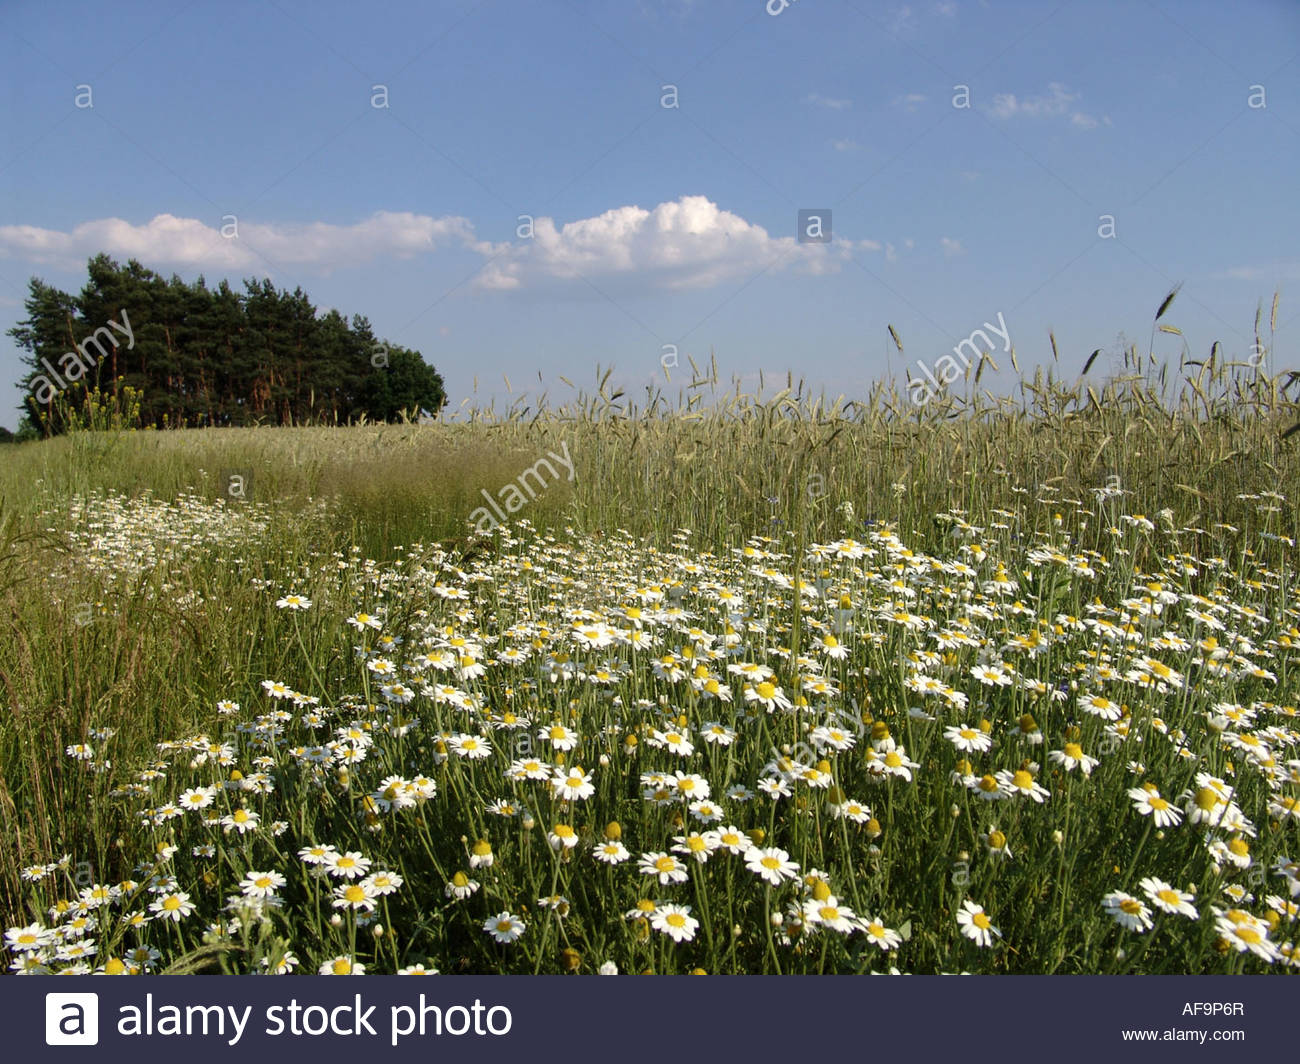 Scentless Mayweed, Scentless Chamomile (tripleurospermum.